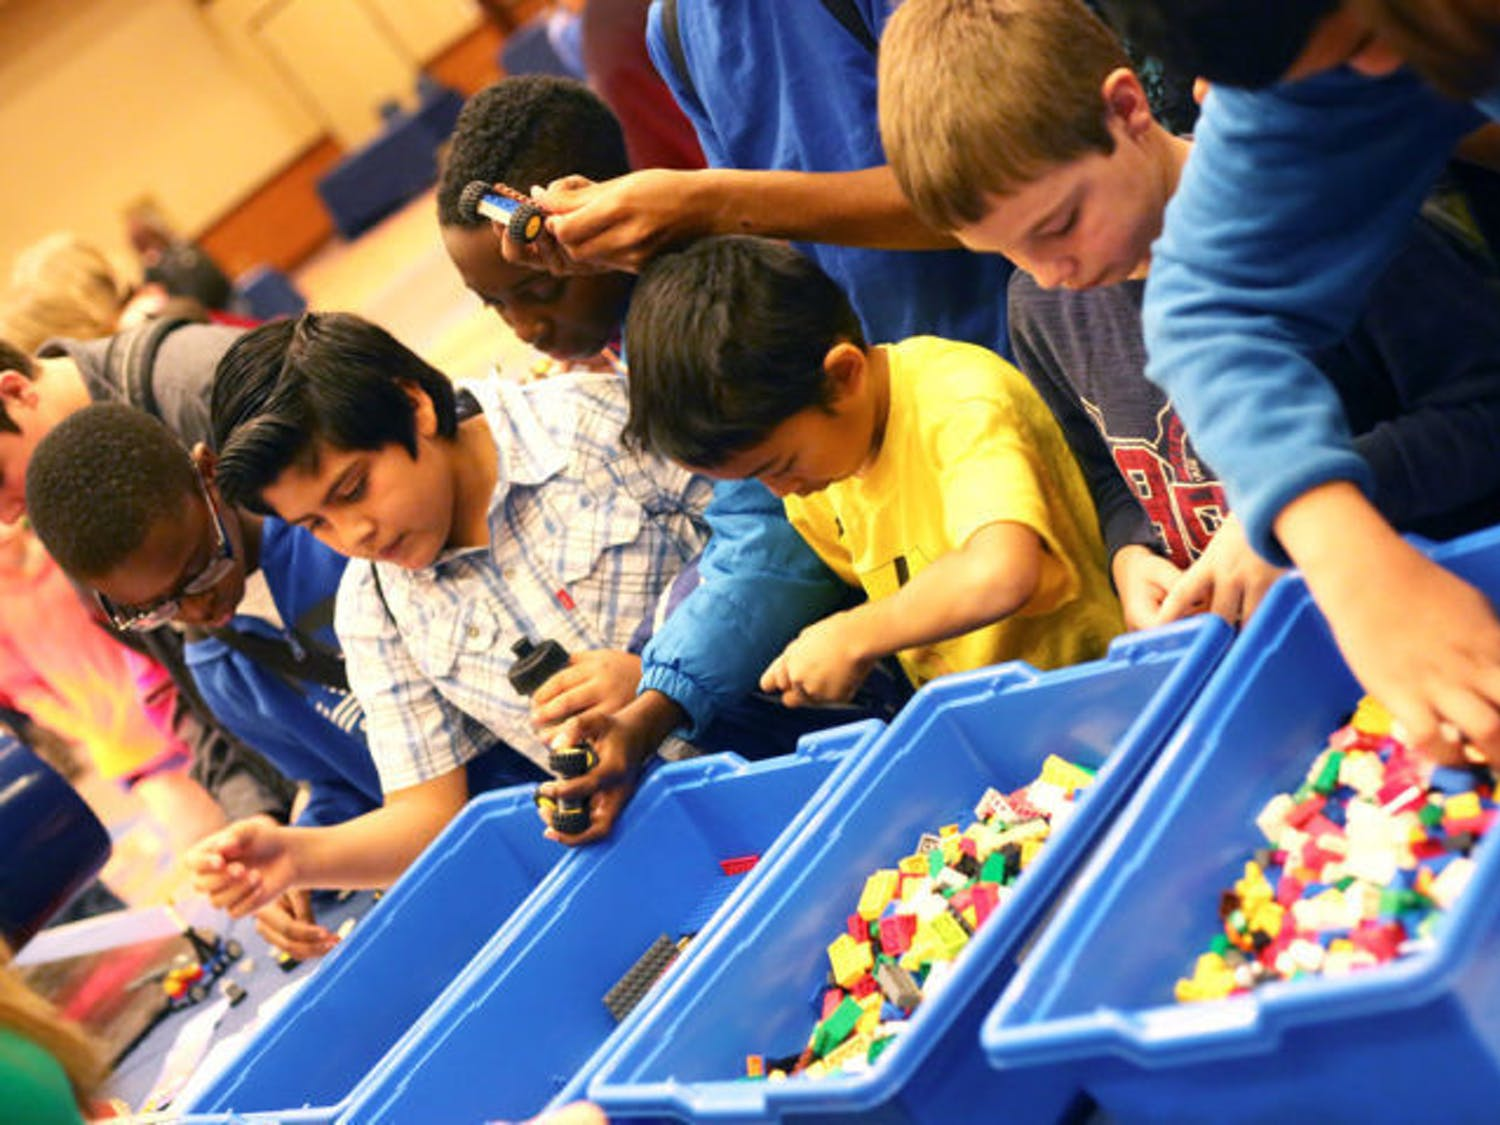 Gainesville elementary and middle school students play with Legos in the Reitz Union Grand Ballroom on Tuesday during the Engineering and Science Fair Day 1. The fair is part of UF's Engineers' Week.